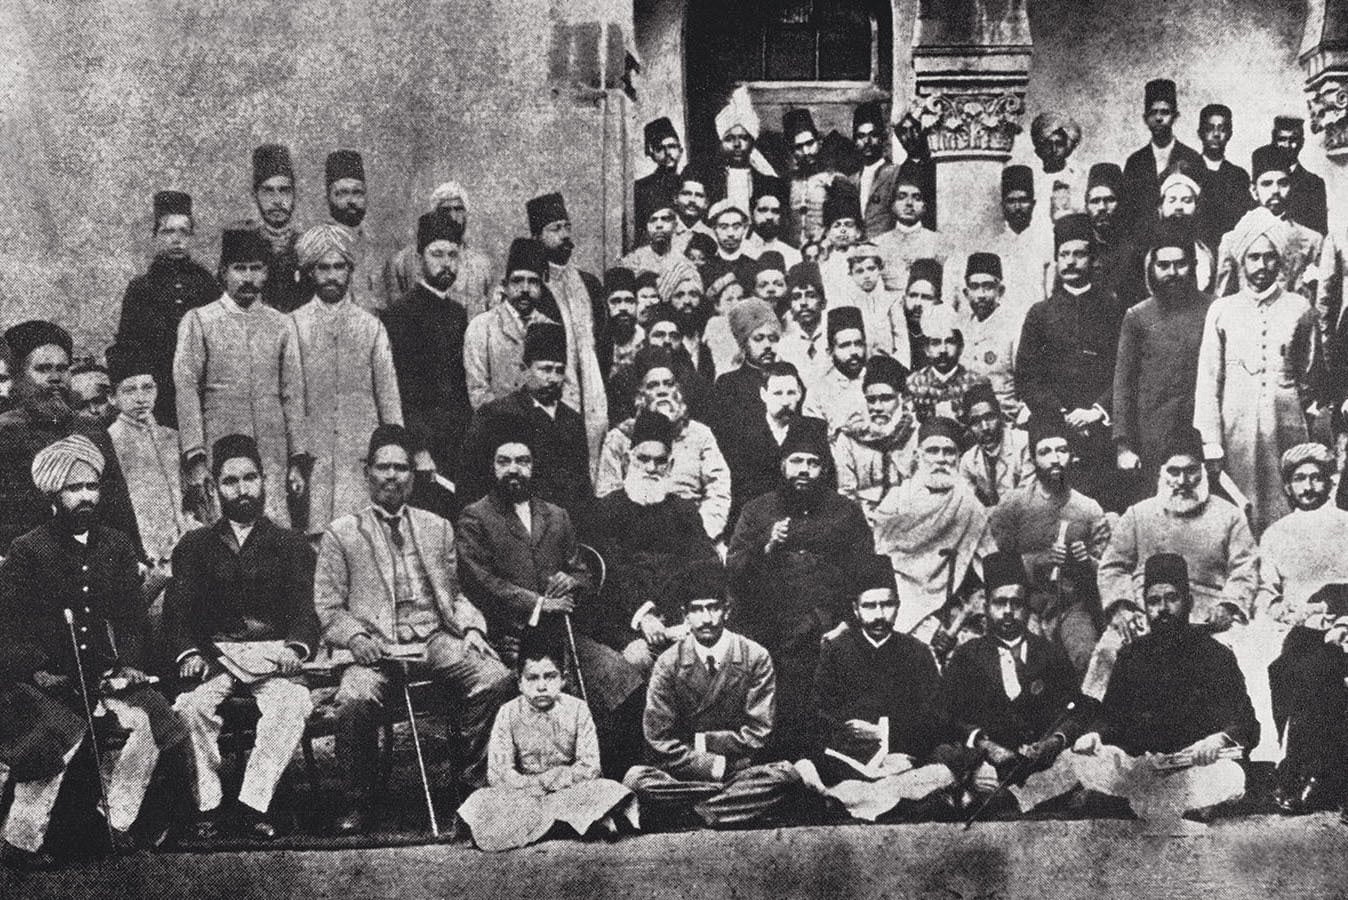 Allama Iqbal (standing; third from right) at the 1904 annual session of the Anjuman-i-Himayat-i-Islam in Lahore. One of Anjuman's objectives was to provide education to the Muslims of India, and it established the Islamia College for Women and the Islamia College, Lahore, in addition to several schools for boys and girls. In 1919, Allama Iqbal was appointed general secretary of the organisation. Photo: The Allama Iqbal Collection.